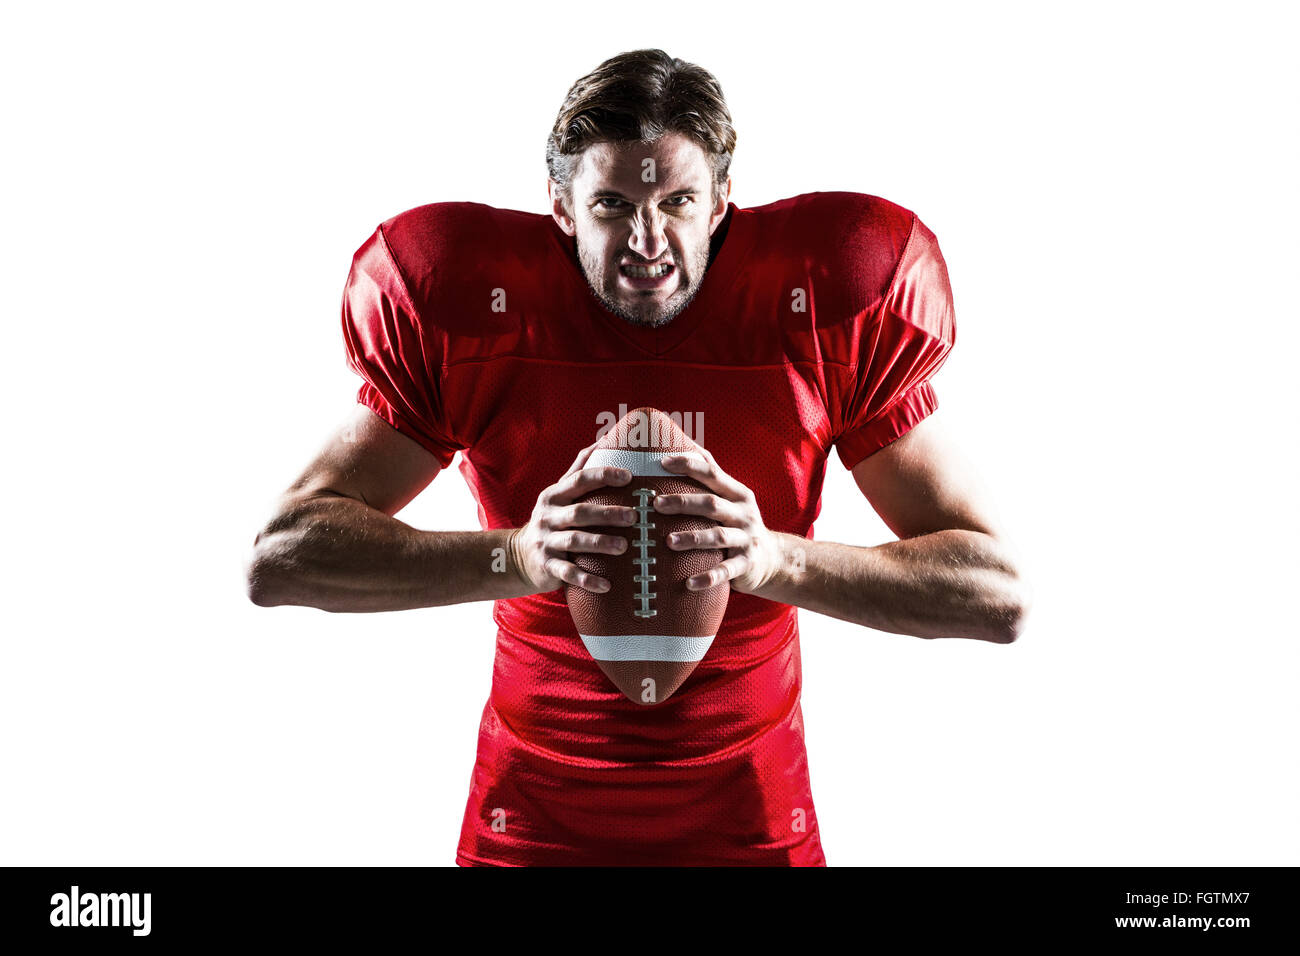 angry american football player in red jersey holding ball stock